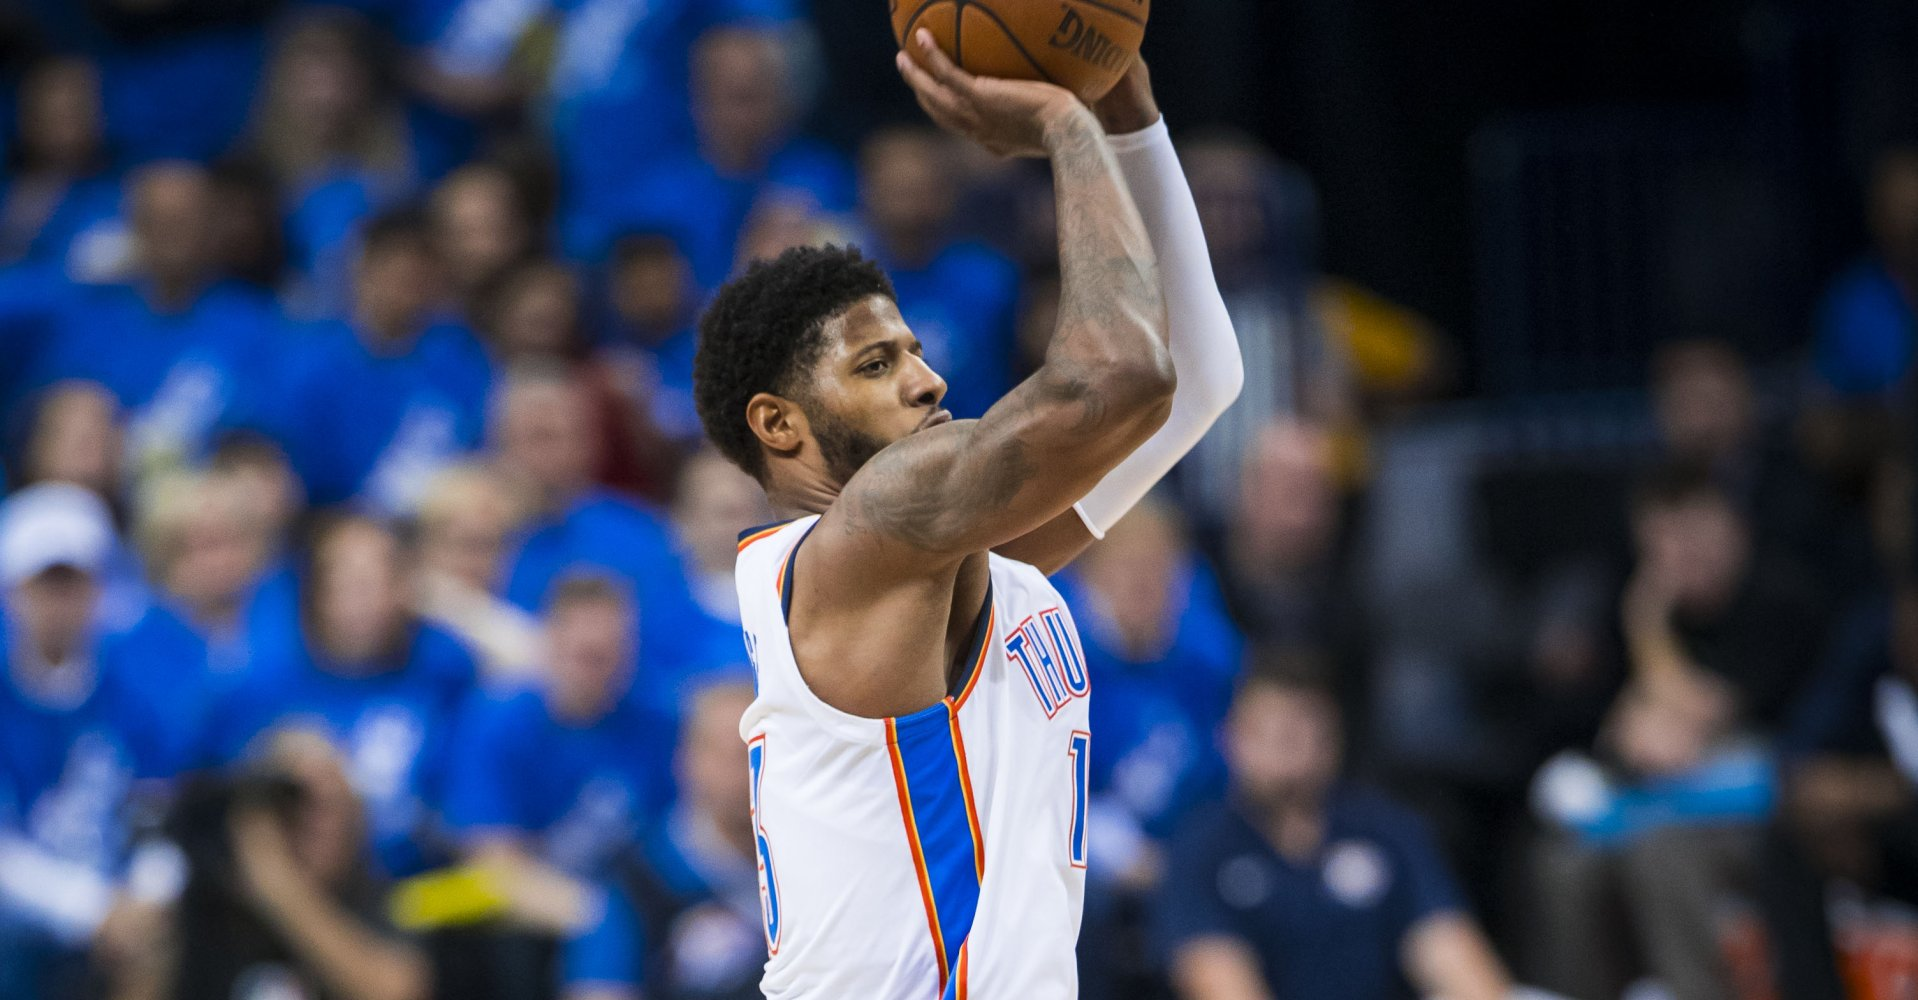 31a88b43447 Our event of the day is the NBA fixture between the Oklahoma City Thunder  and the Utah Jazz at Chesapeake Energy Arena. The Thunder find themselves  in a ...